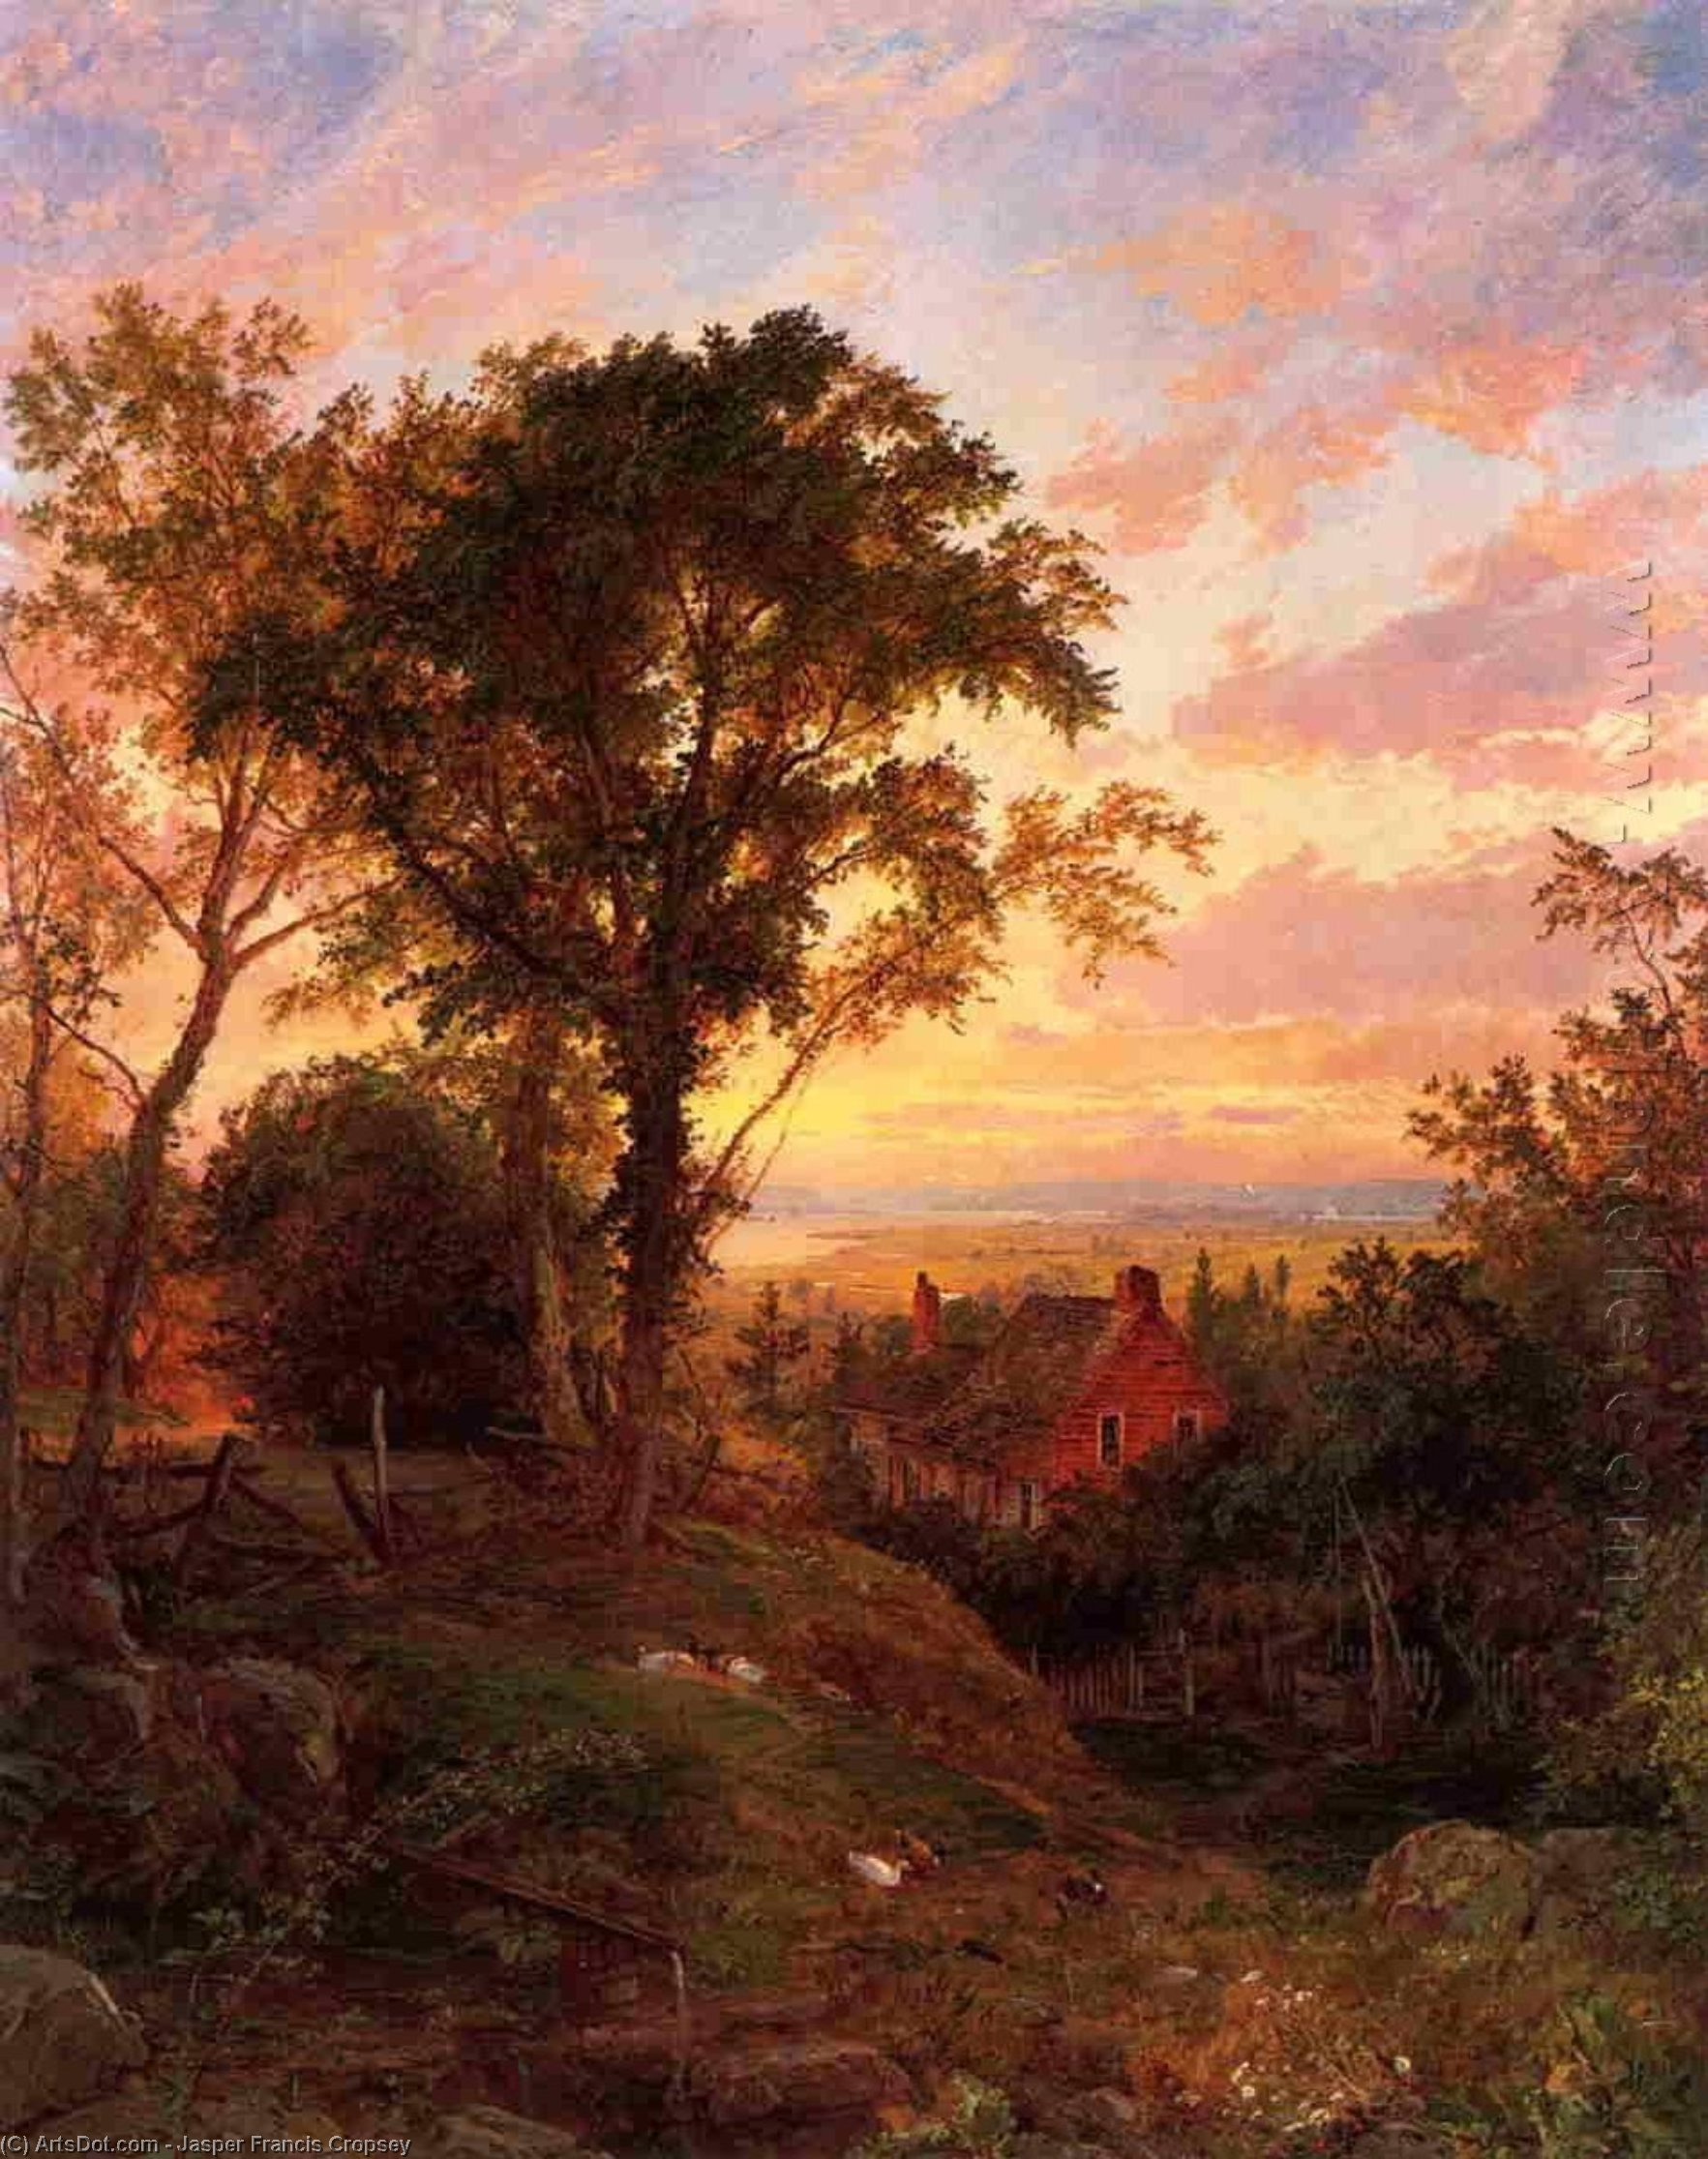 The Old Home, Oil On Canvas by Jasper Francis Cropsey (1823-1900, United States)